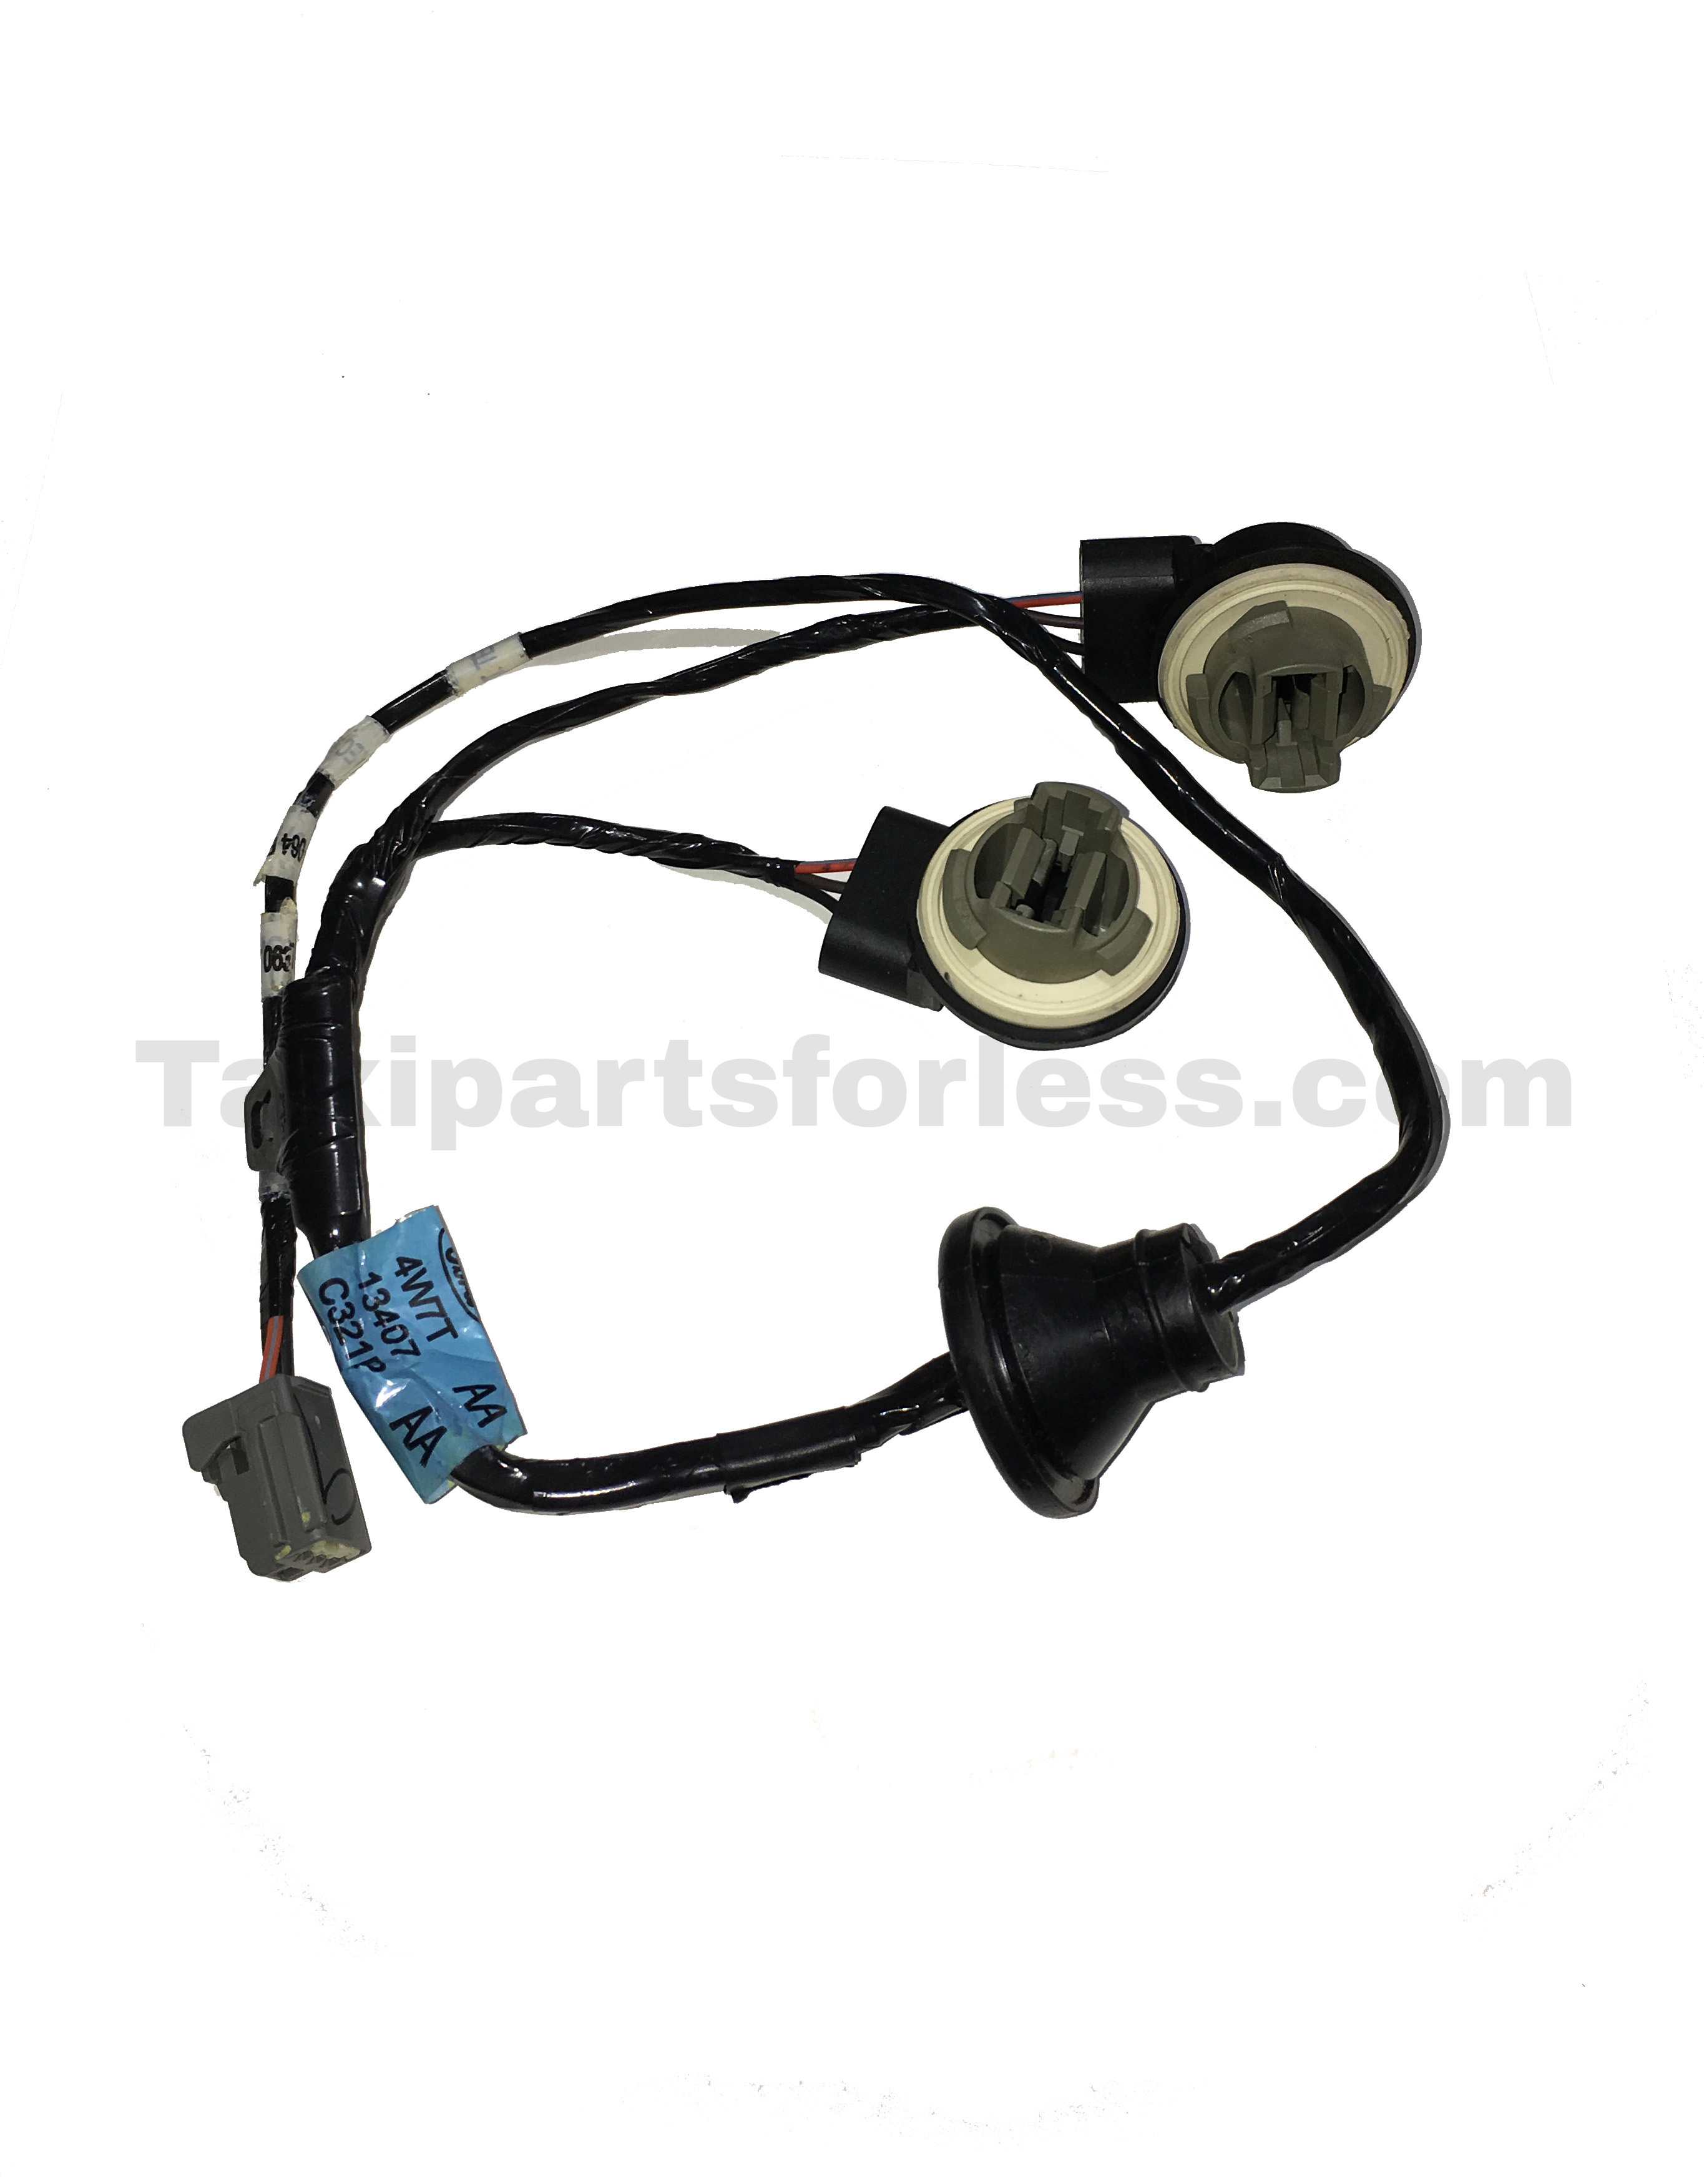 yw7z13410ba (2) & wire harness fits 03 04 grand marquis & 04 crown victoria new crown victoria wire harness at gsmportal.co